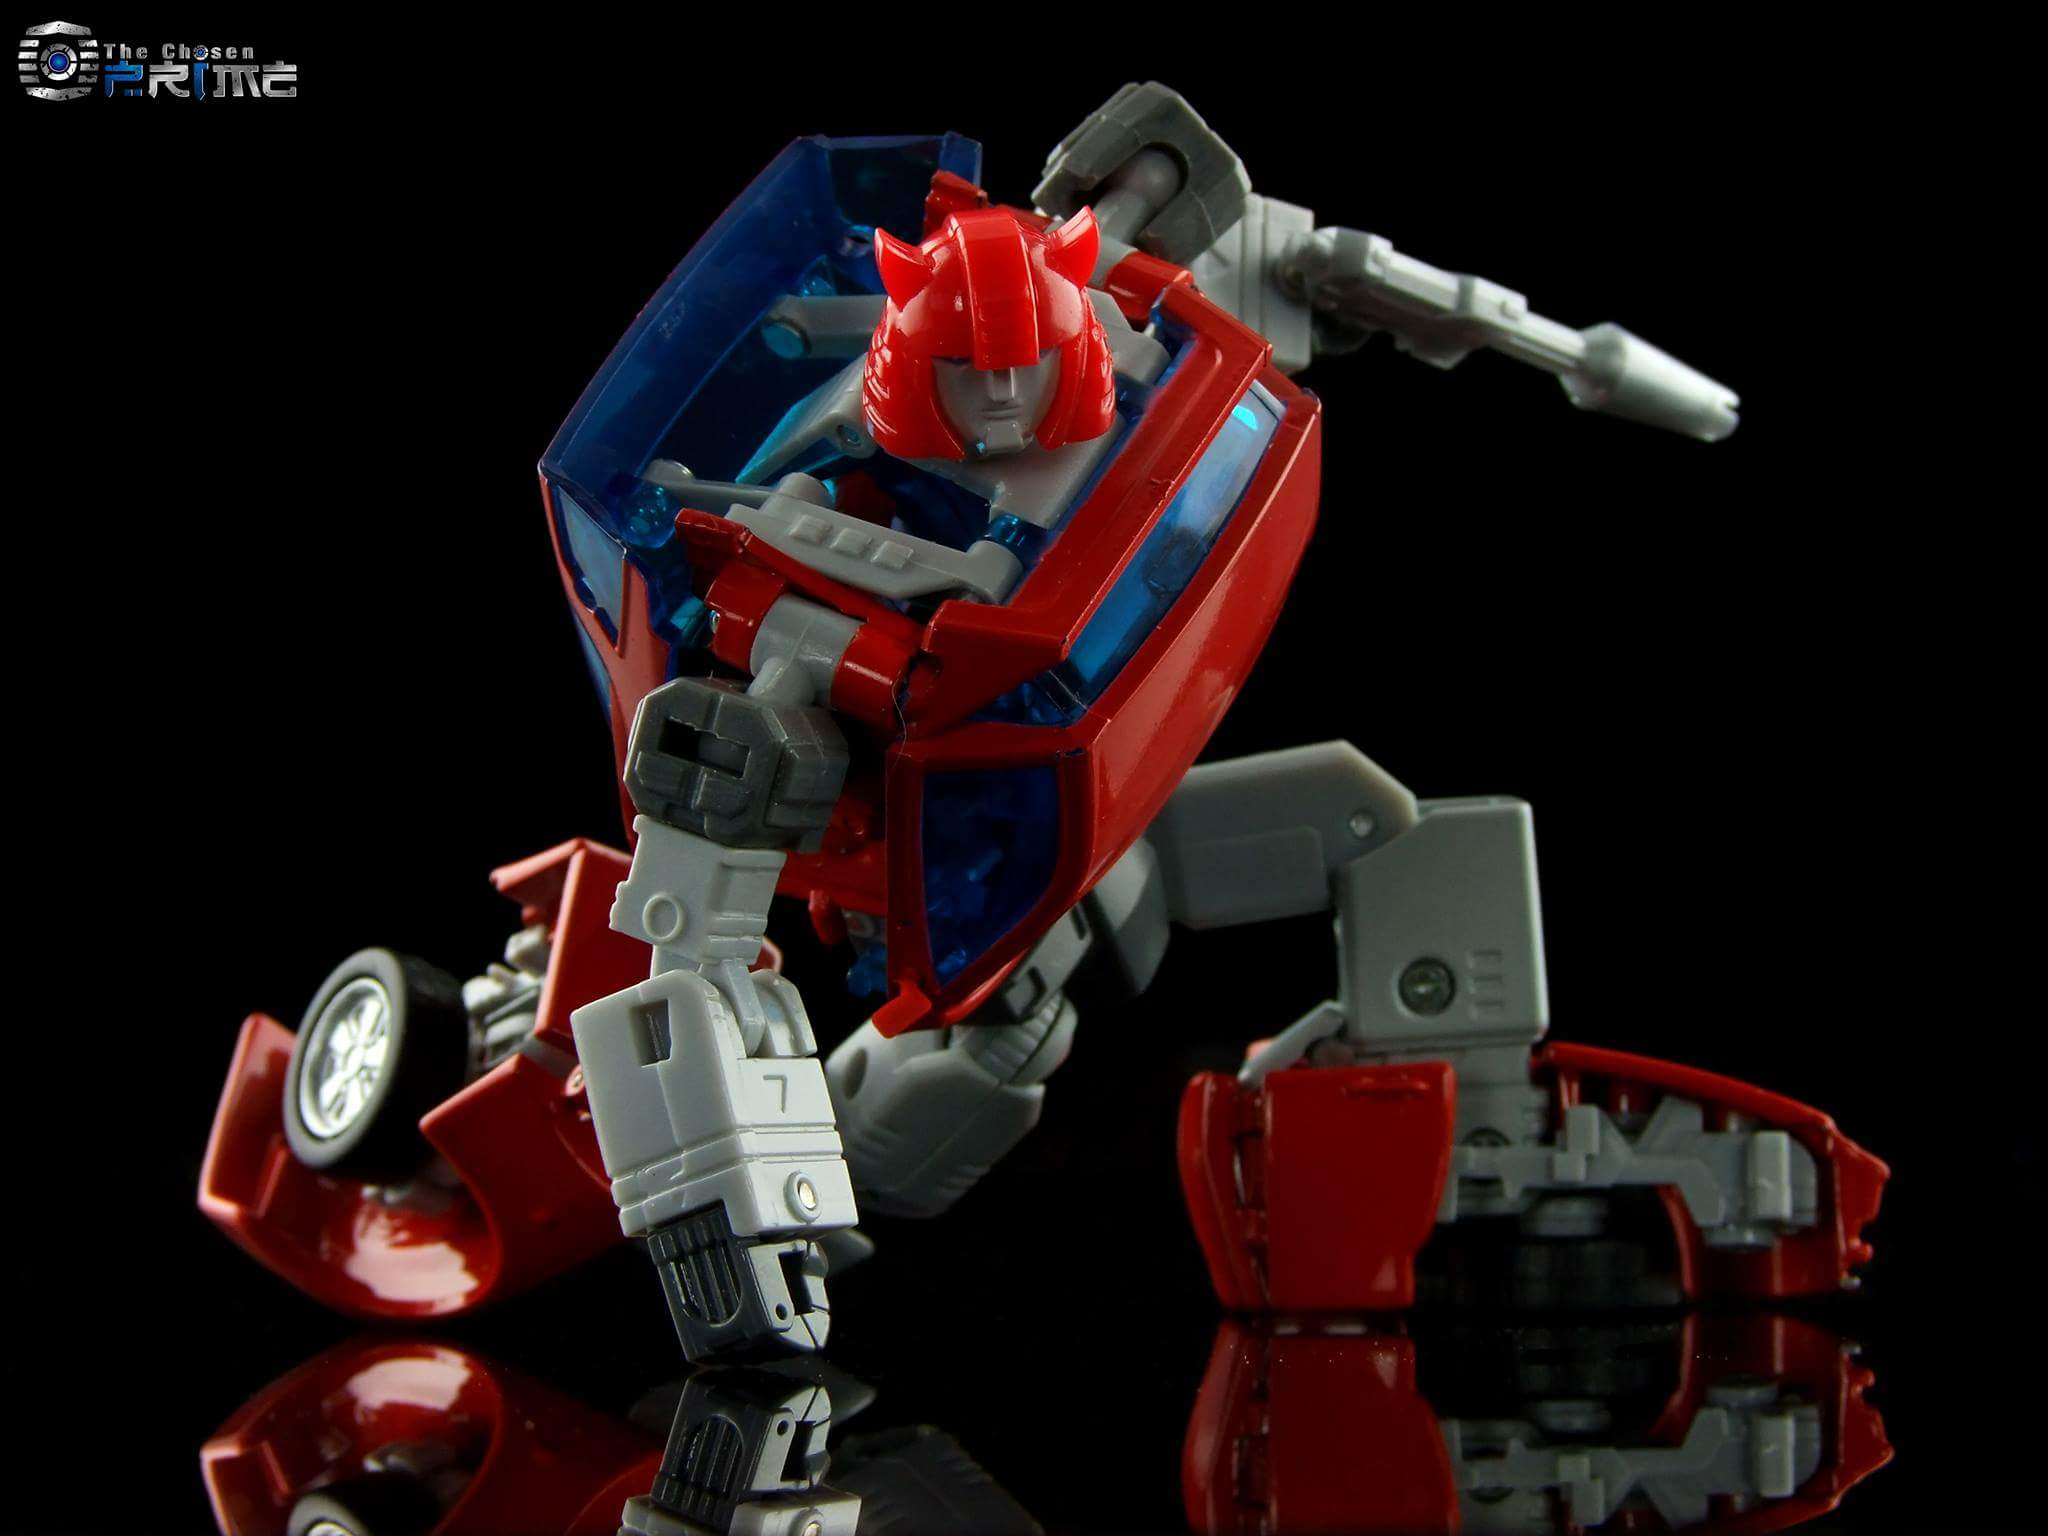 [ACE Collectables] Produit Tiers - Minibots MP - ACE-01 Tumbler (aka Cliffjumper/Matamore), ACE-02 Hiccups (aka Hubcap/Virevolto), ACE-03 Trident (aka Seaspray/Embruns) CfhyuMTw